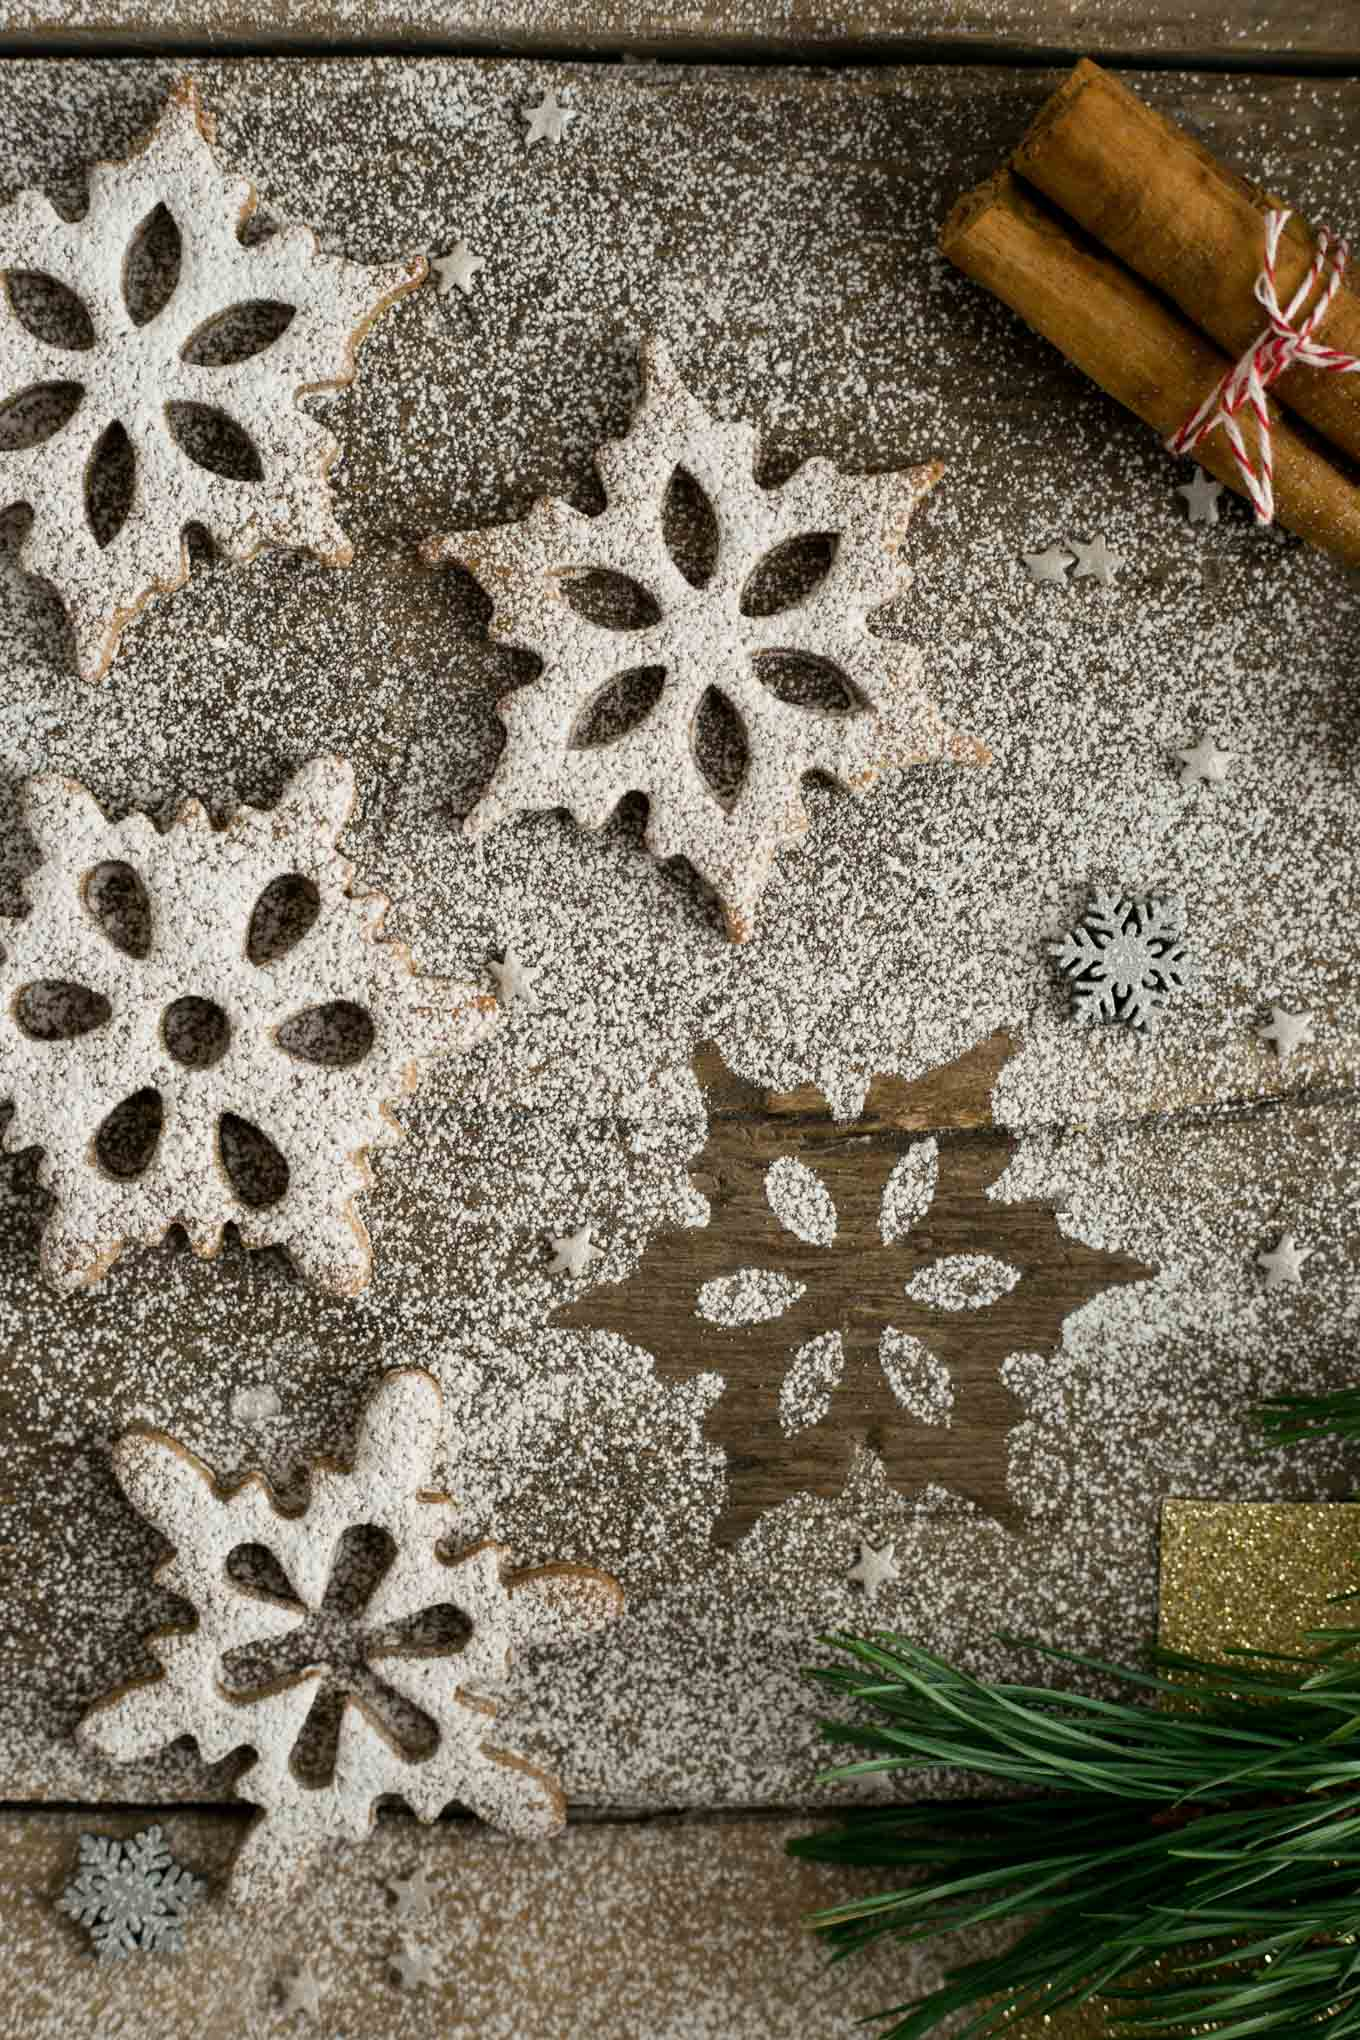 Winter snowflake cookies with cinnamon & maple. Delicious and fun to make cookies, perfect for Christmas! #cookies #Christmas #vegan | via @annabanana.co